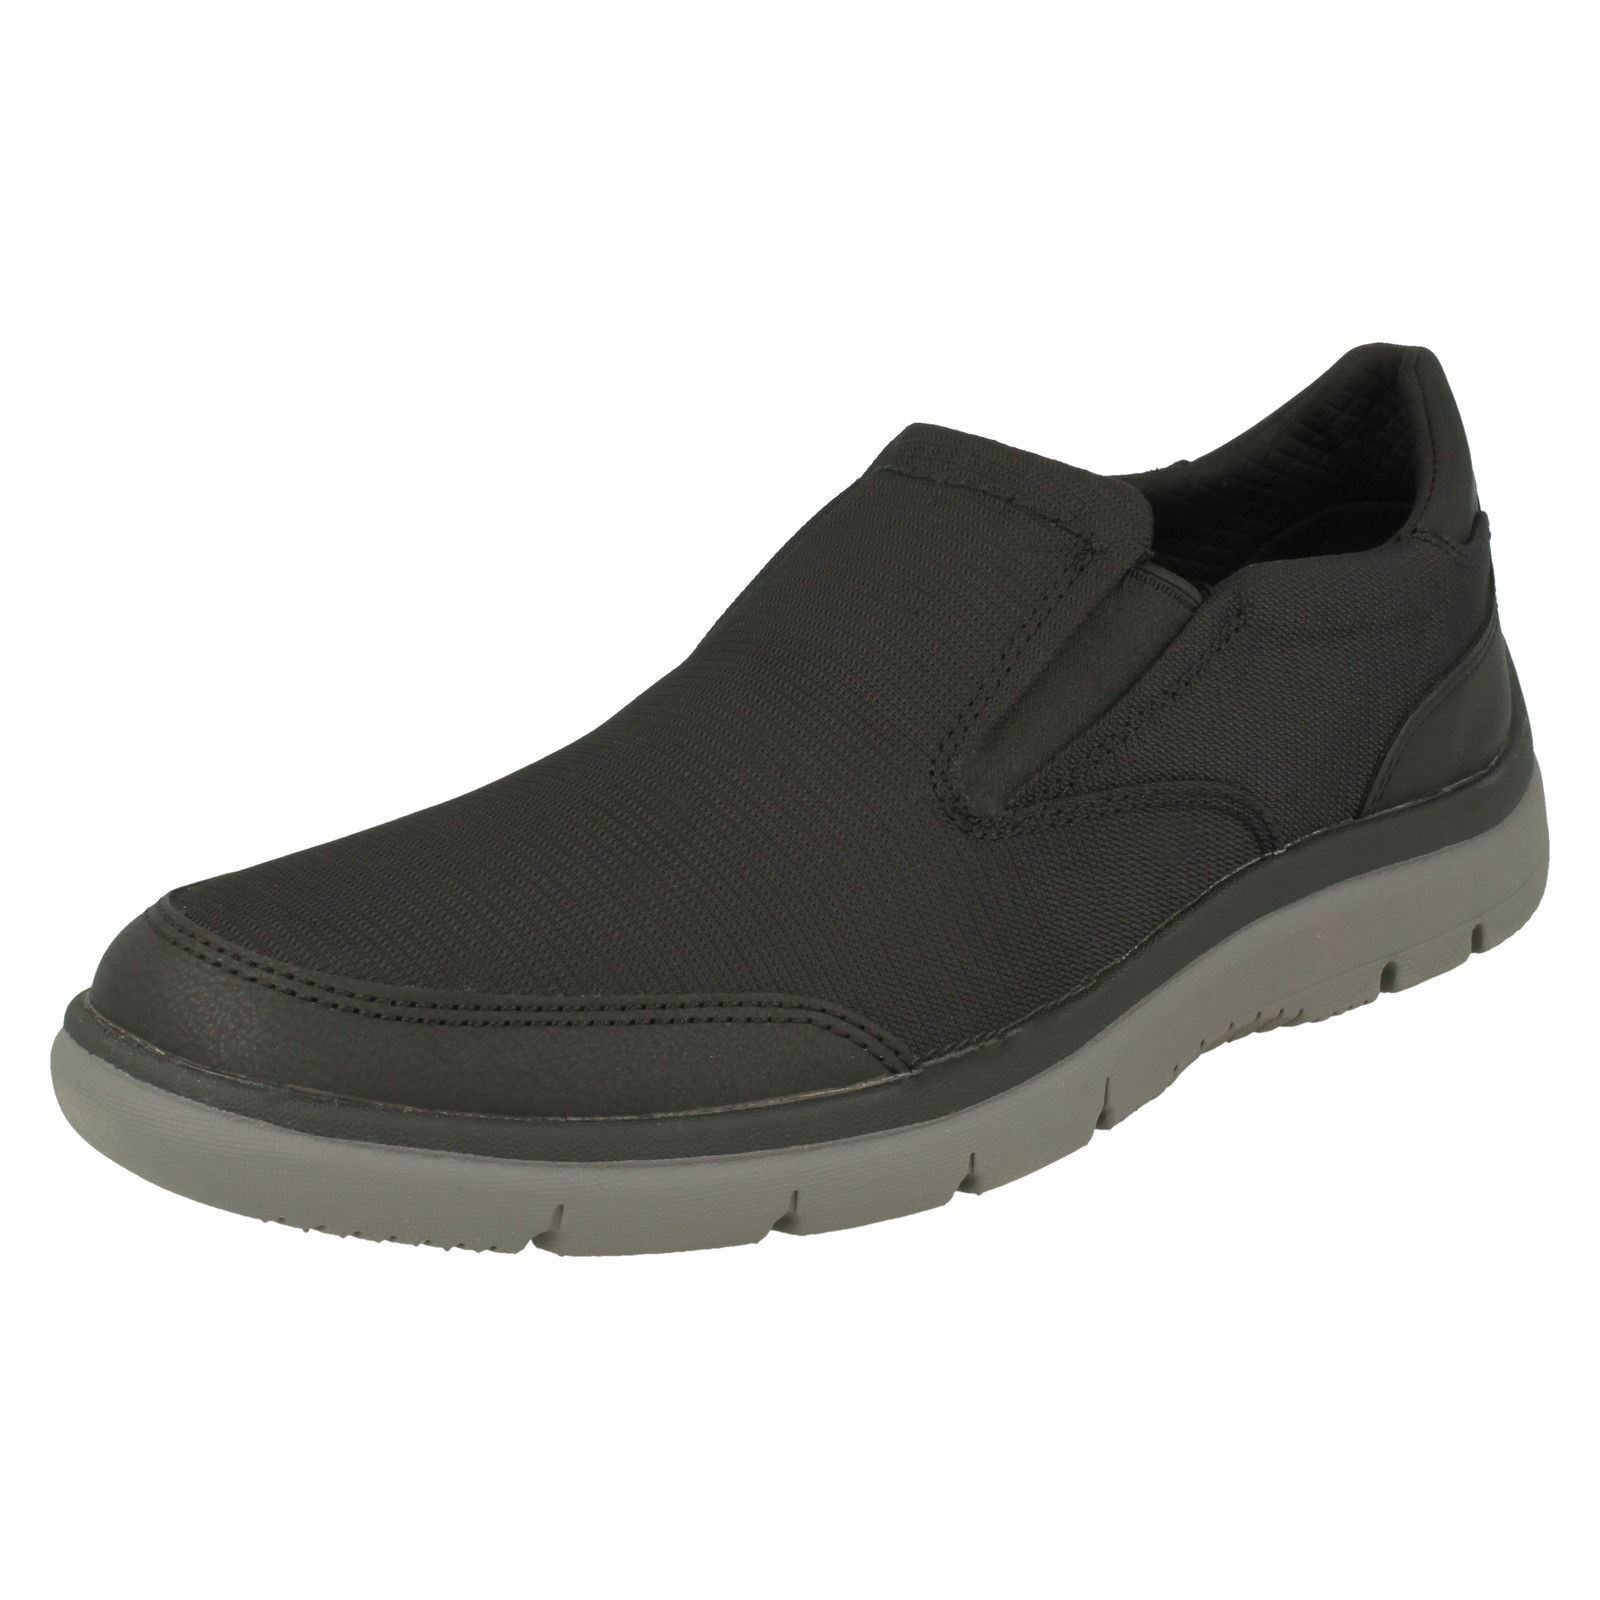 Mens Clarks Casual Slip On Trainers 'Tunsil Step'